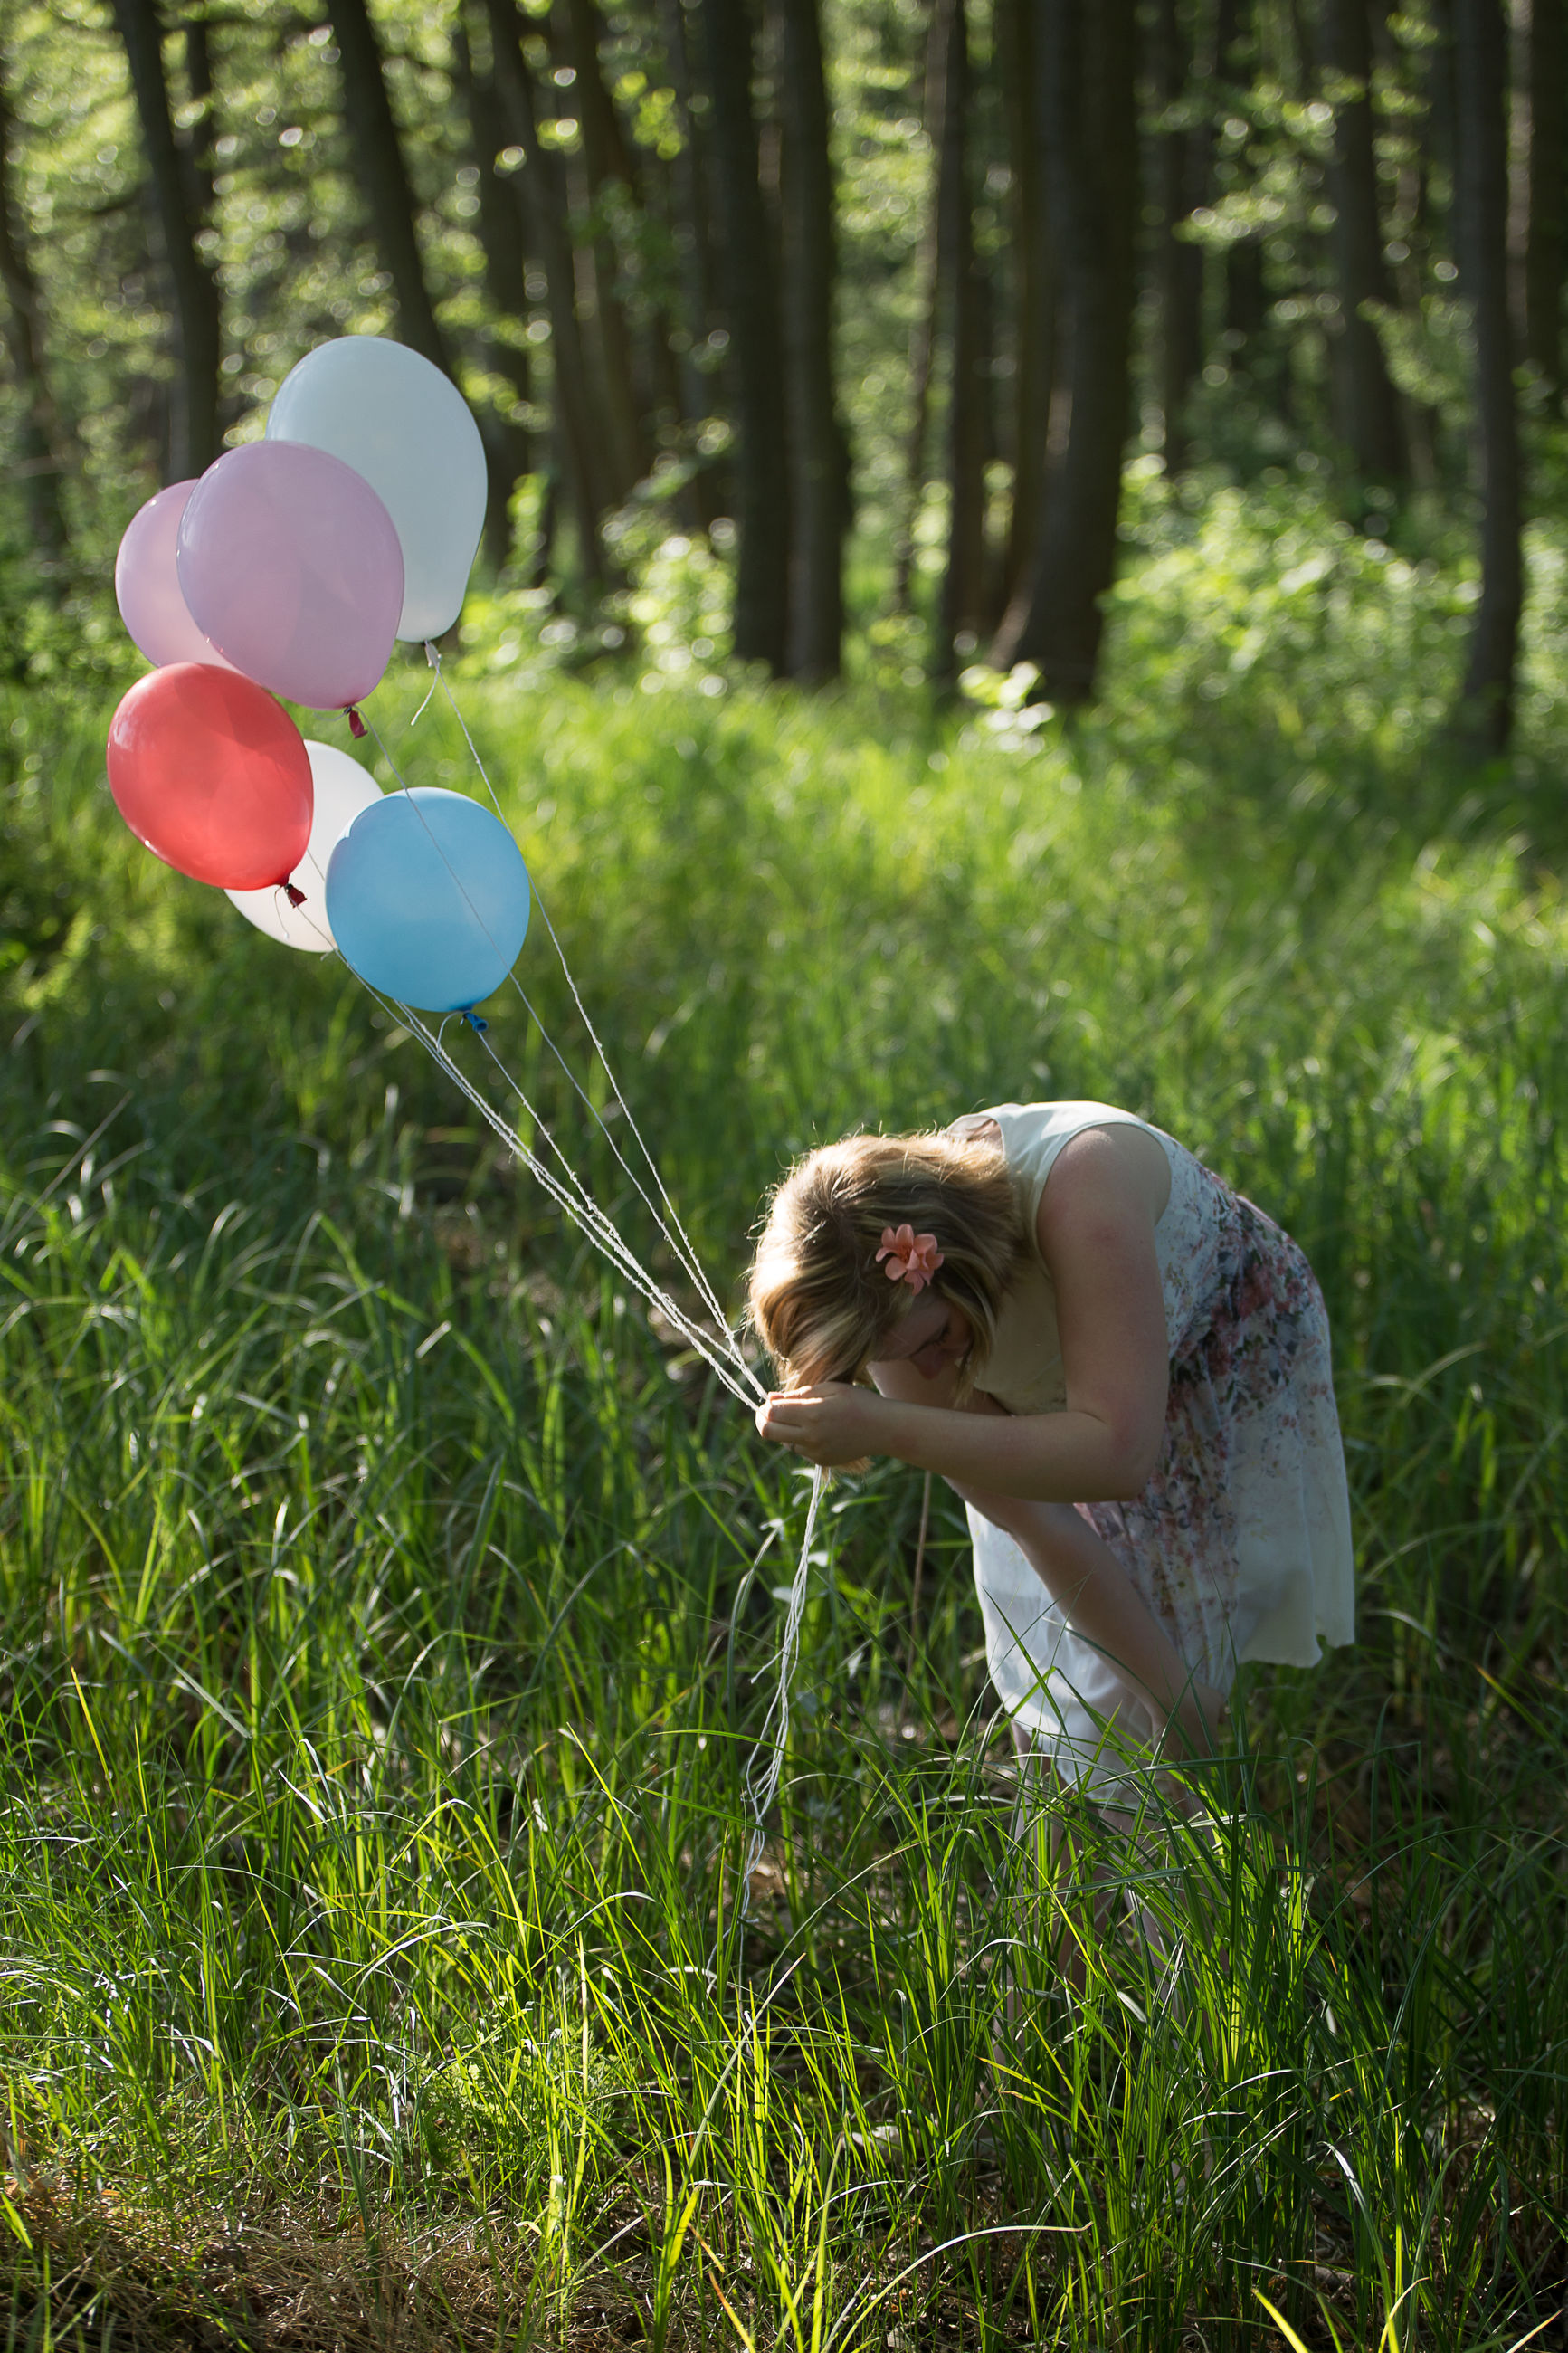 plant, land, grass, nature, balloon, field, women, real people, one person, day, lifestyles, tree, girls, females, leisure activity, side view, three quarter length, green color, helium balloon, outdoors, hairstyle